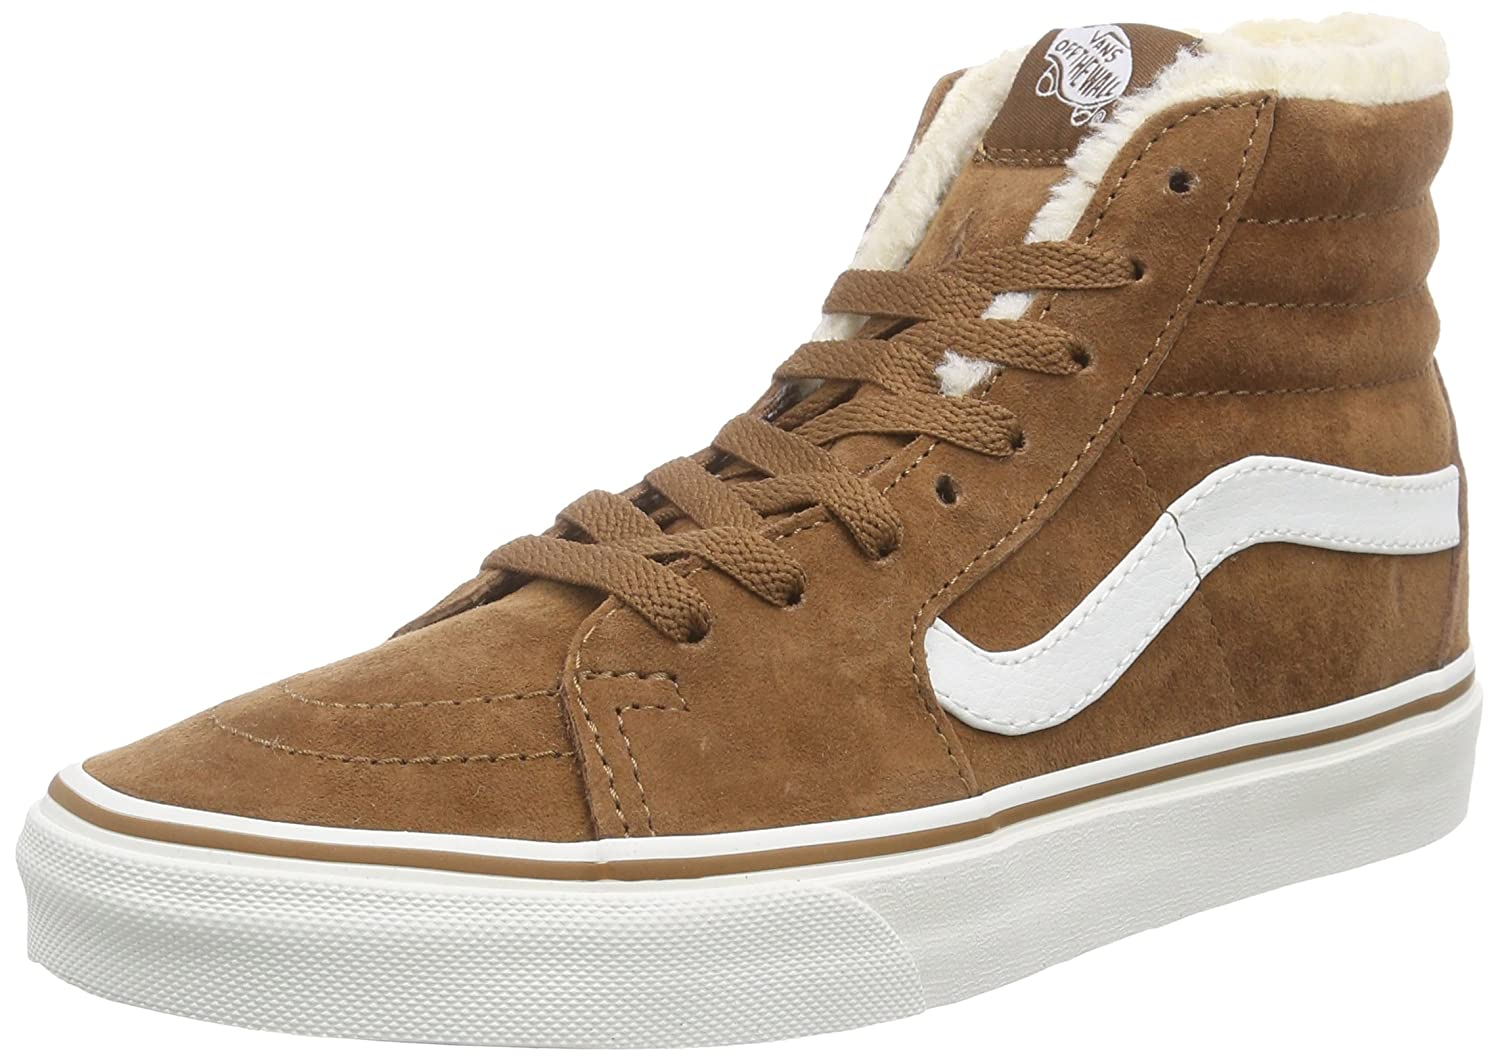 Vans Unisex Sk8-Hi Reissue Skate Shoes B00T82BTF6 10.5 M US Women / 9 M US Men|(Pig Suede/Fleece) Monk's Robe/Blanc